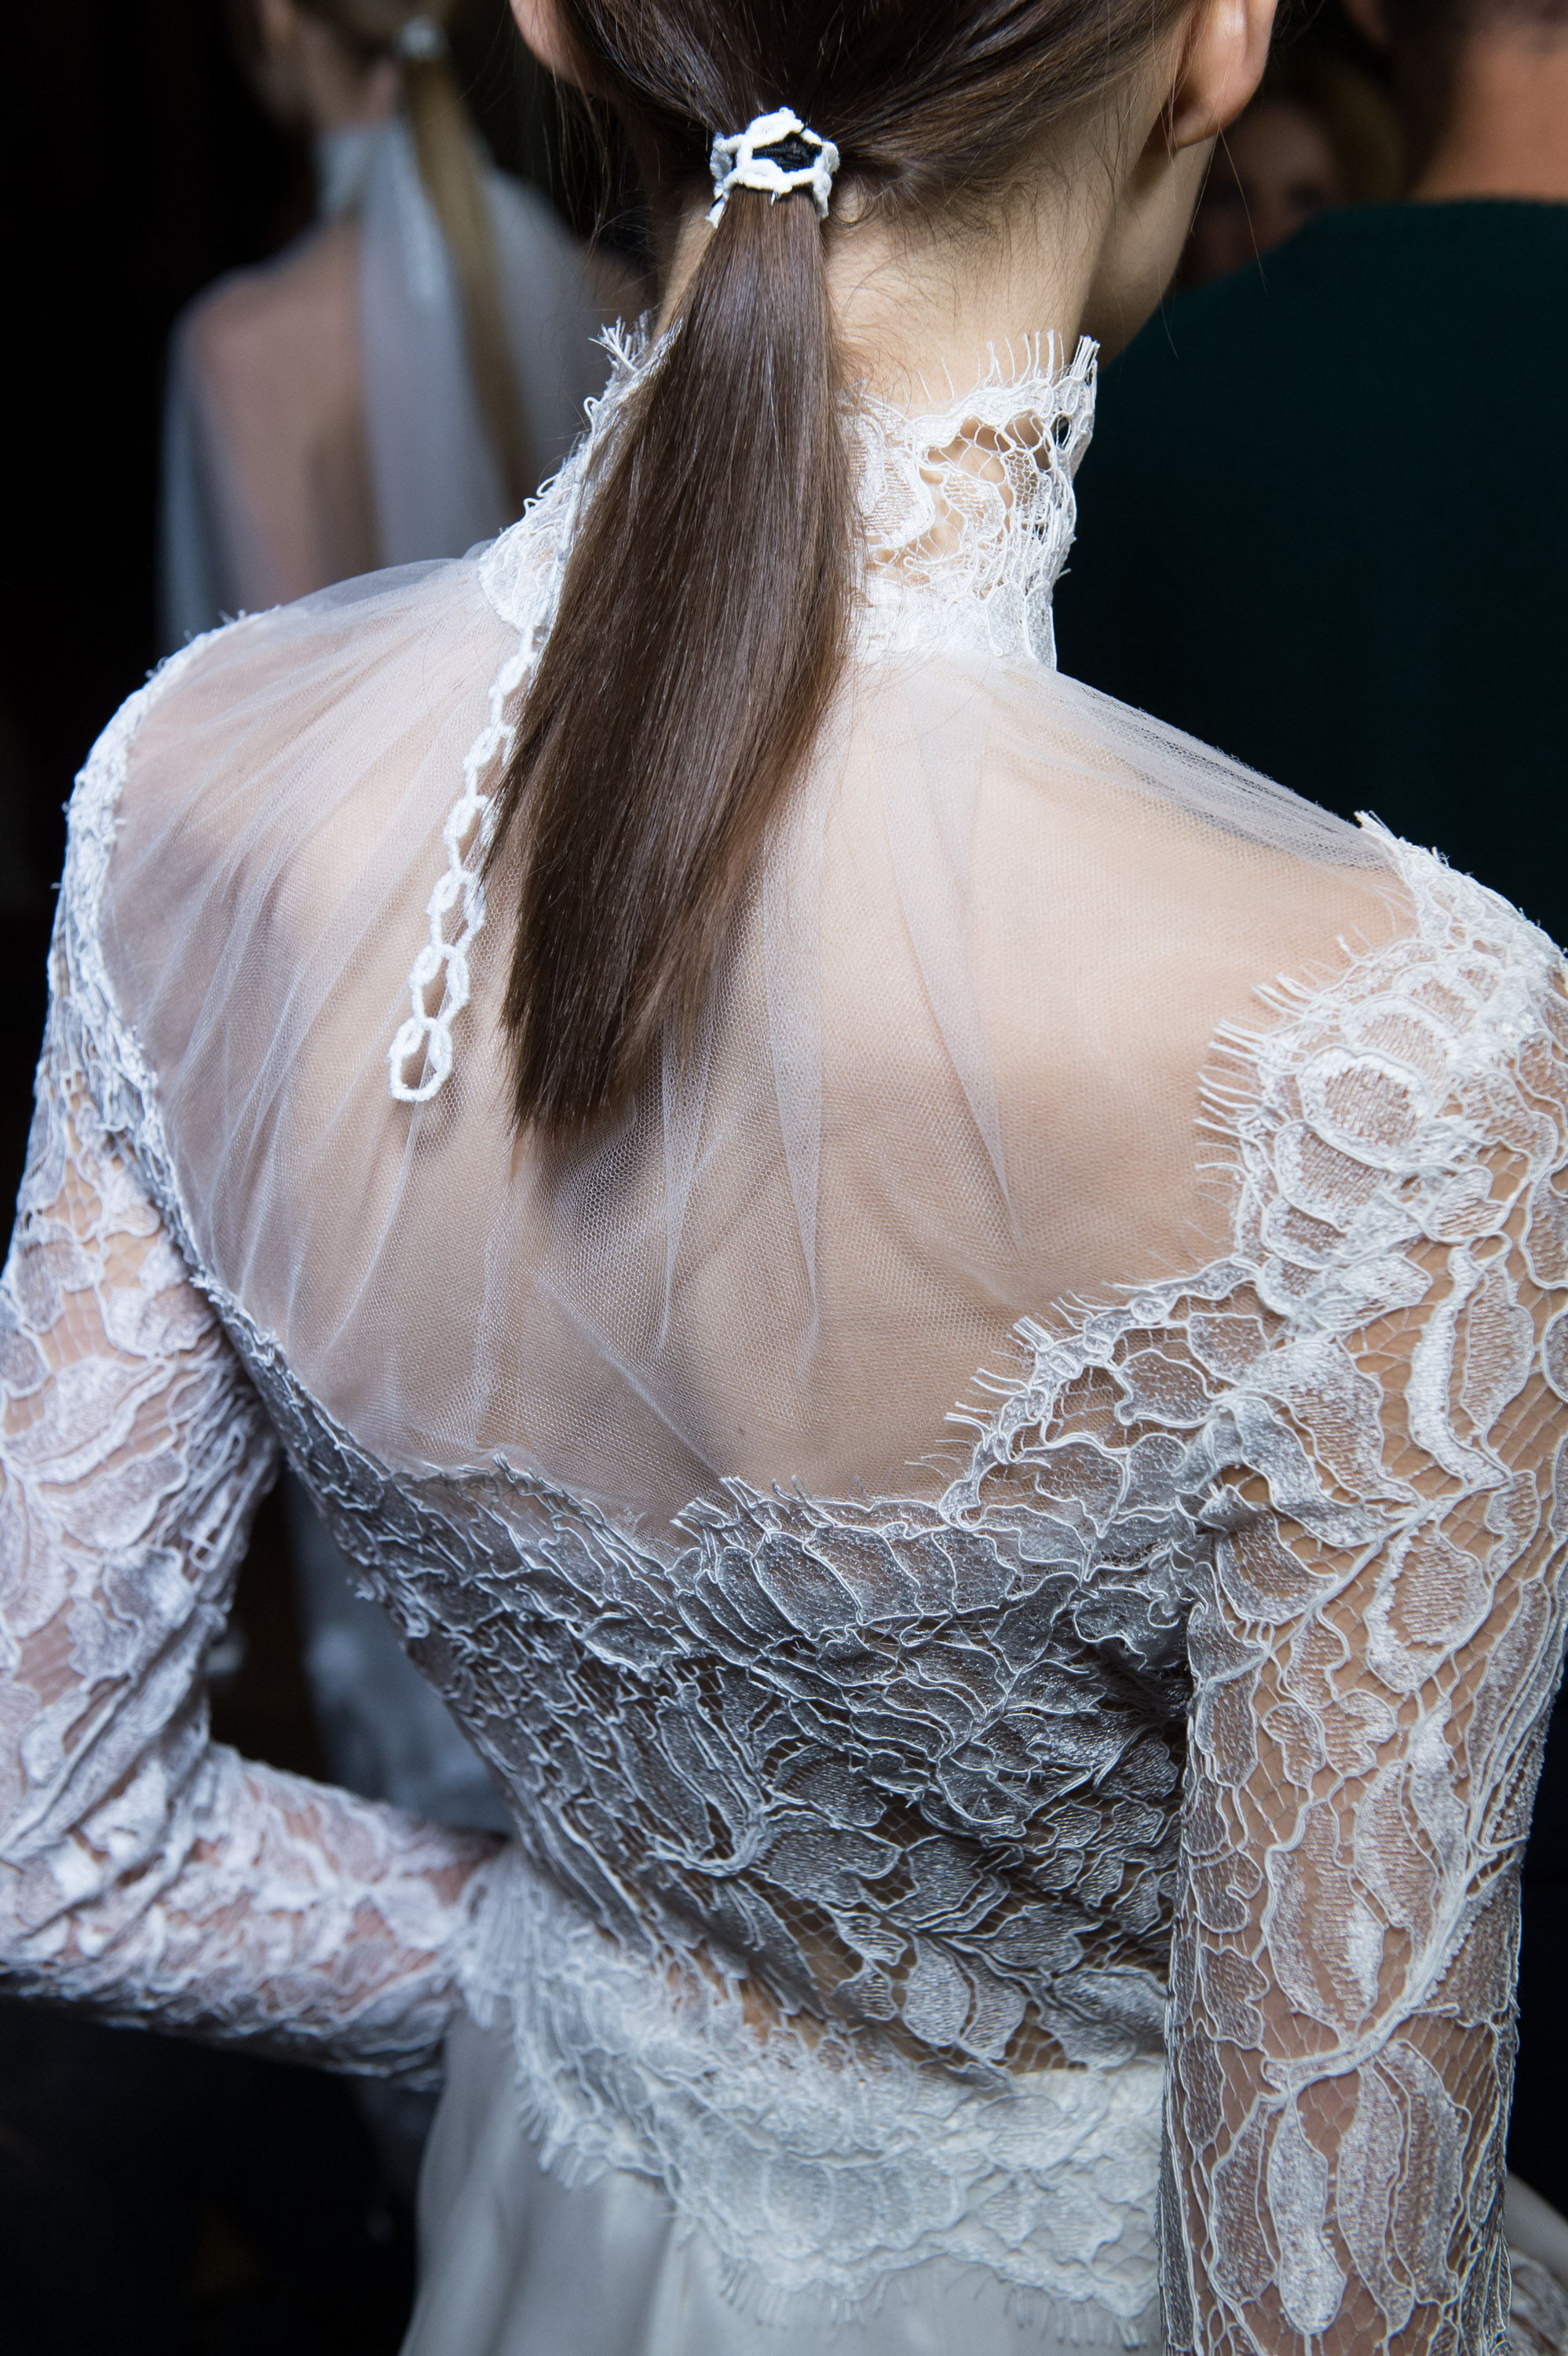 Kaviar Gauche : Backstage - Paris Fashion Week Womenswear Spring/Summer 2016